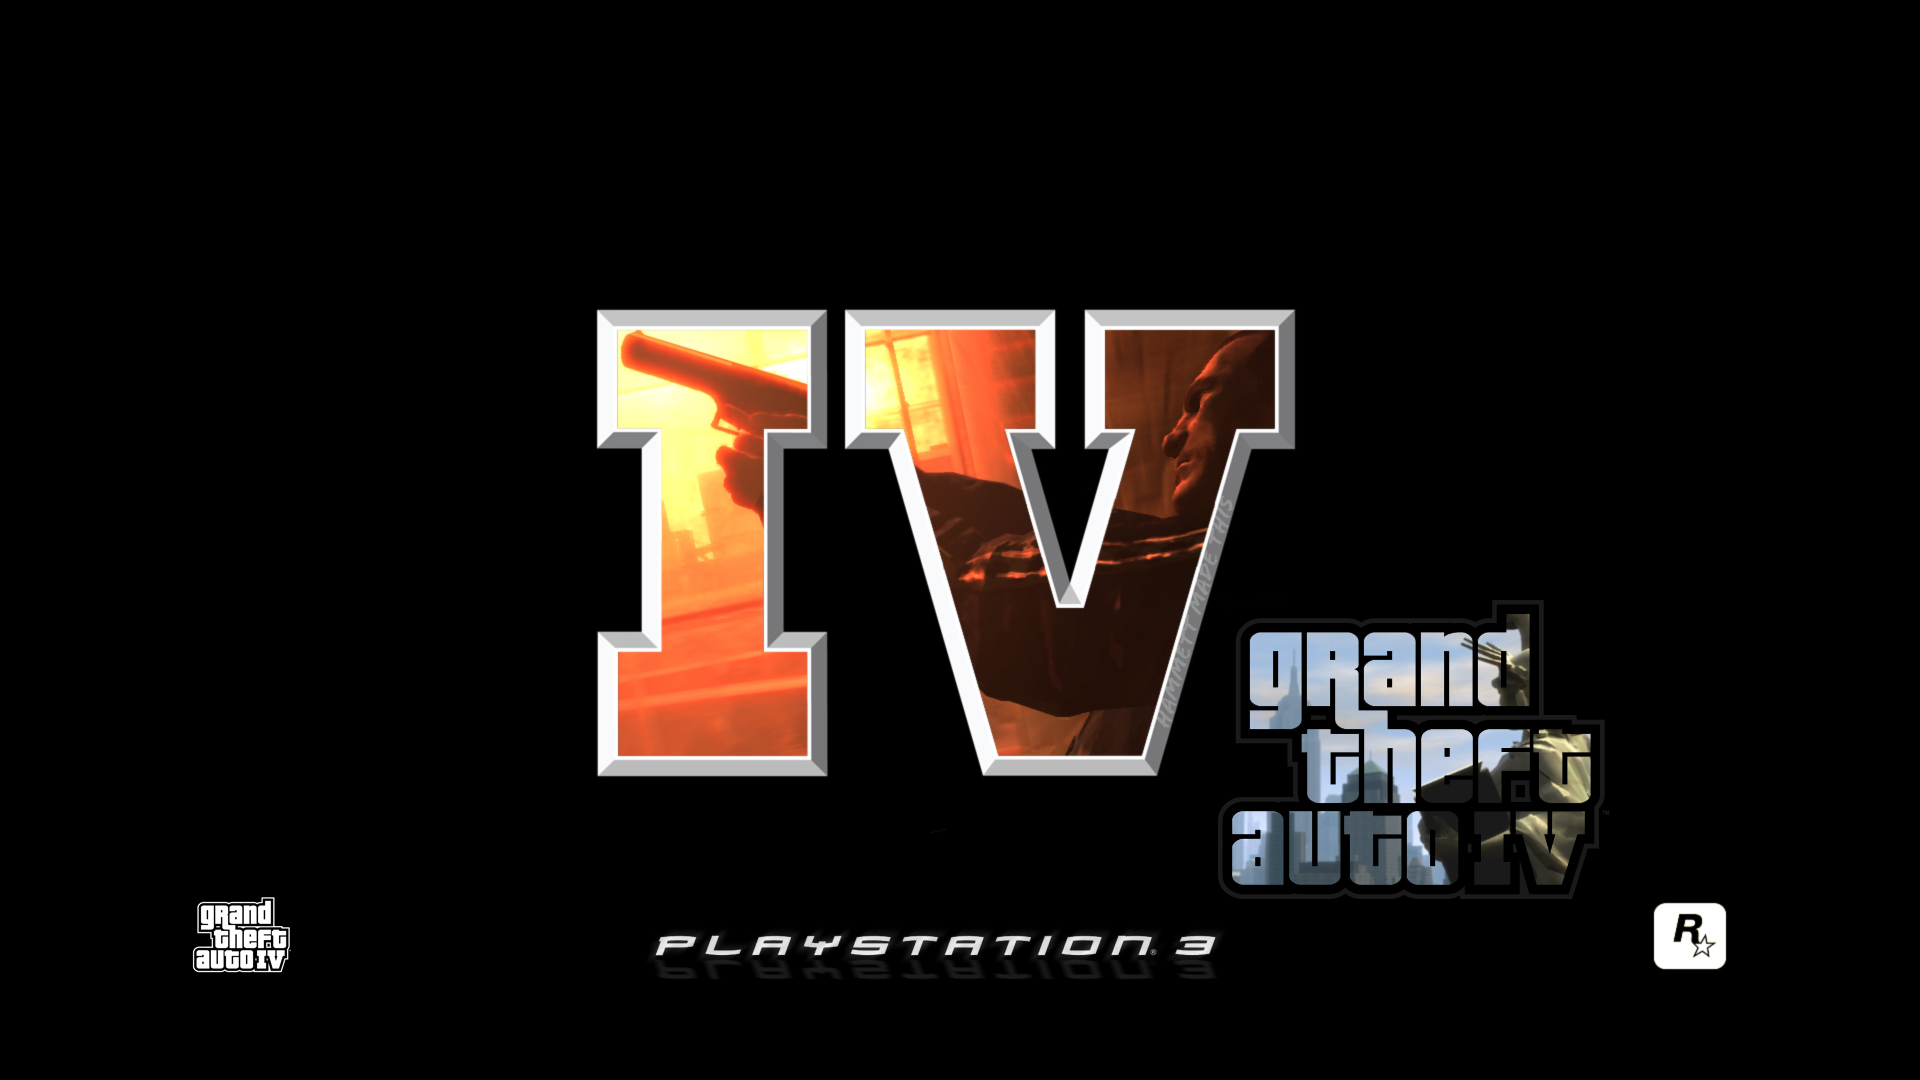 This is a Grand Theft Auto 4 wallpaper This Grand Theft Auto 4 1920x1080